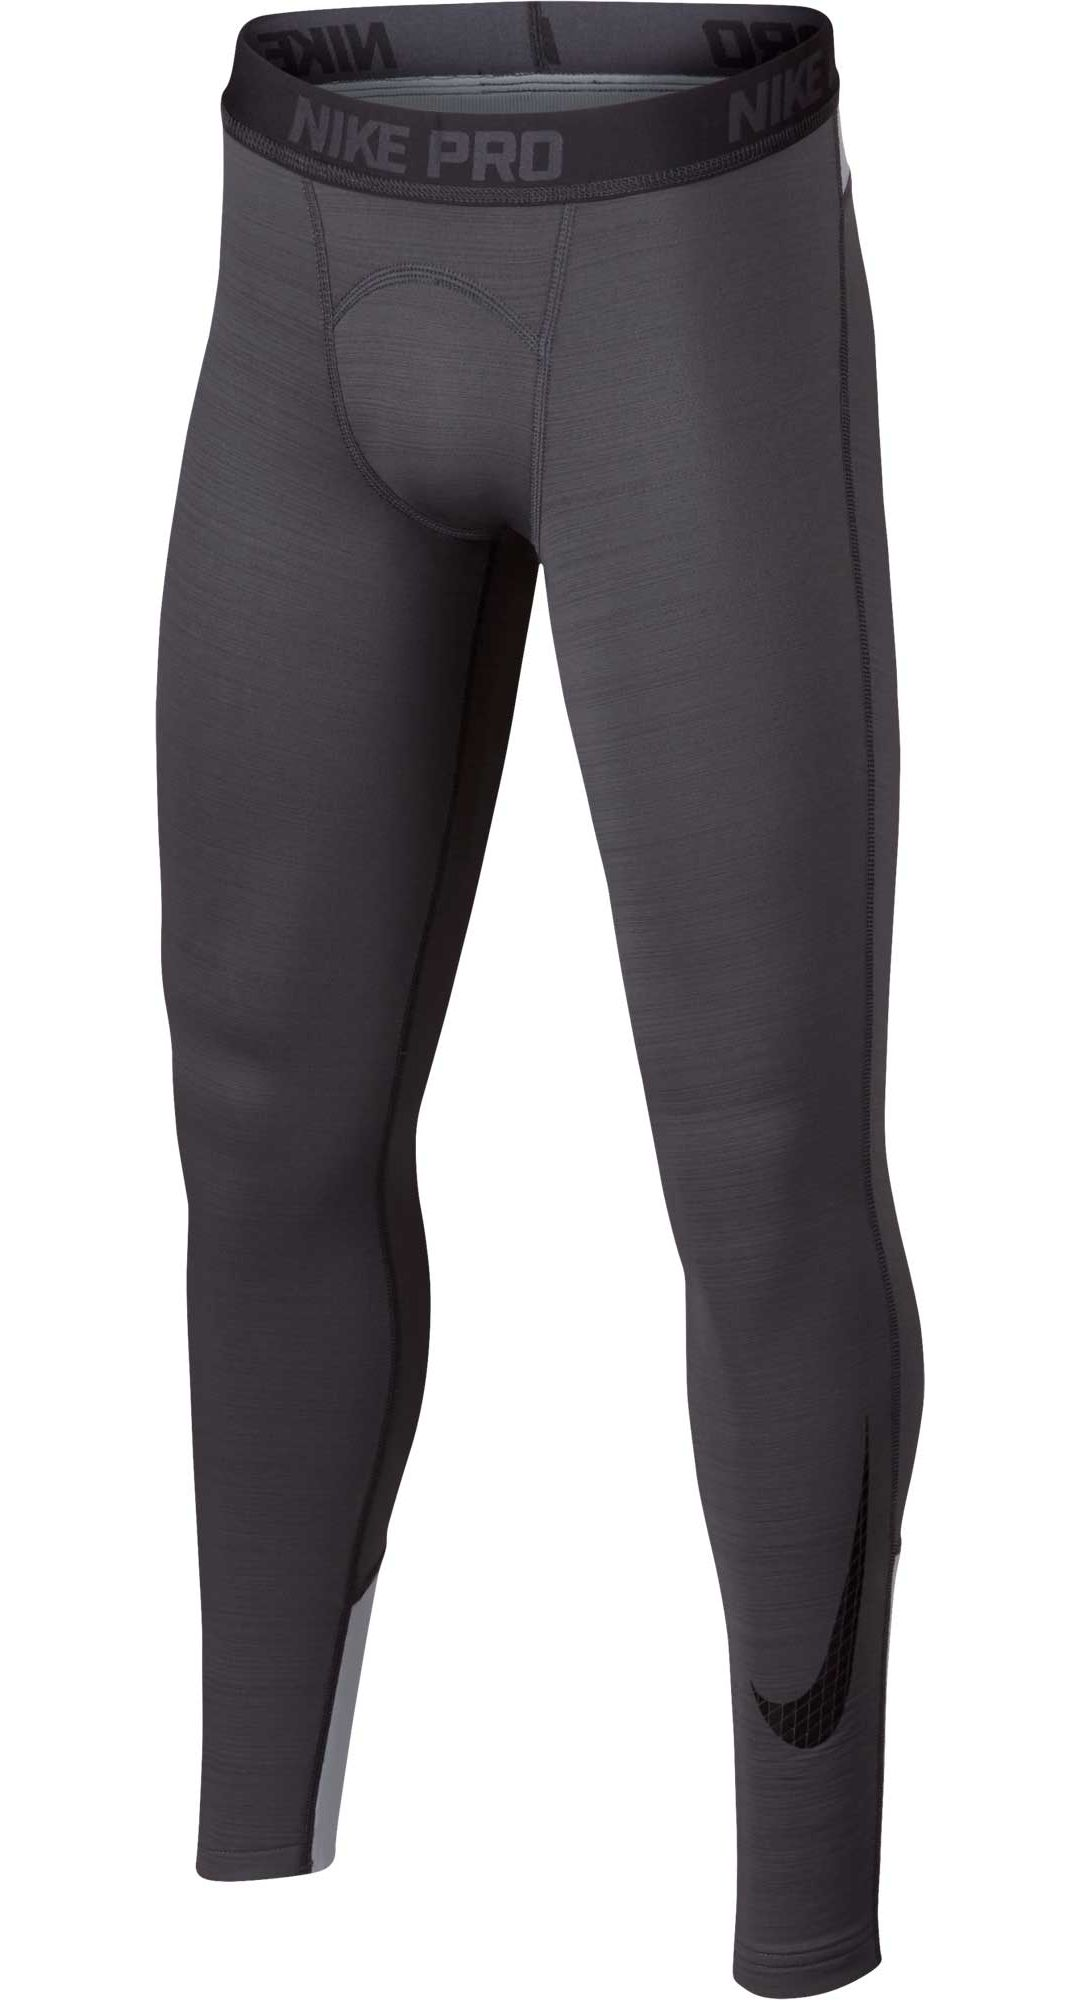 4504296e5d2a5 Nike Boys' Dri-FIT Cold Weather Compression Leggings. noImageFound. Previous